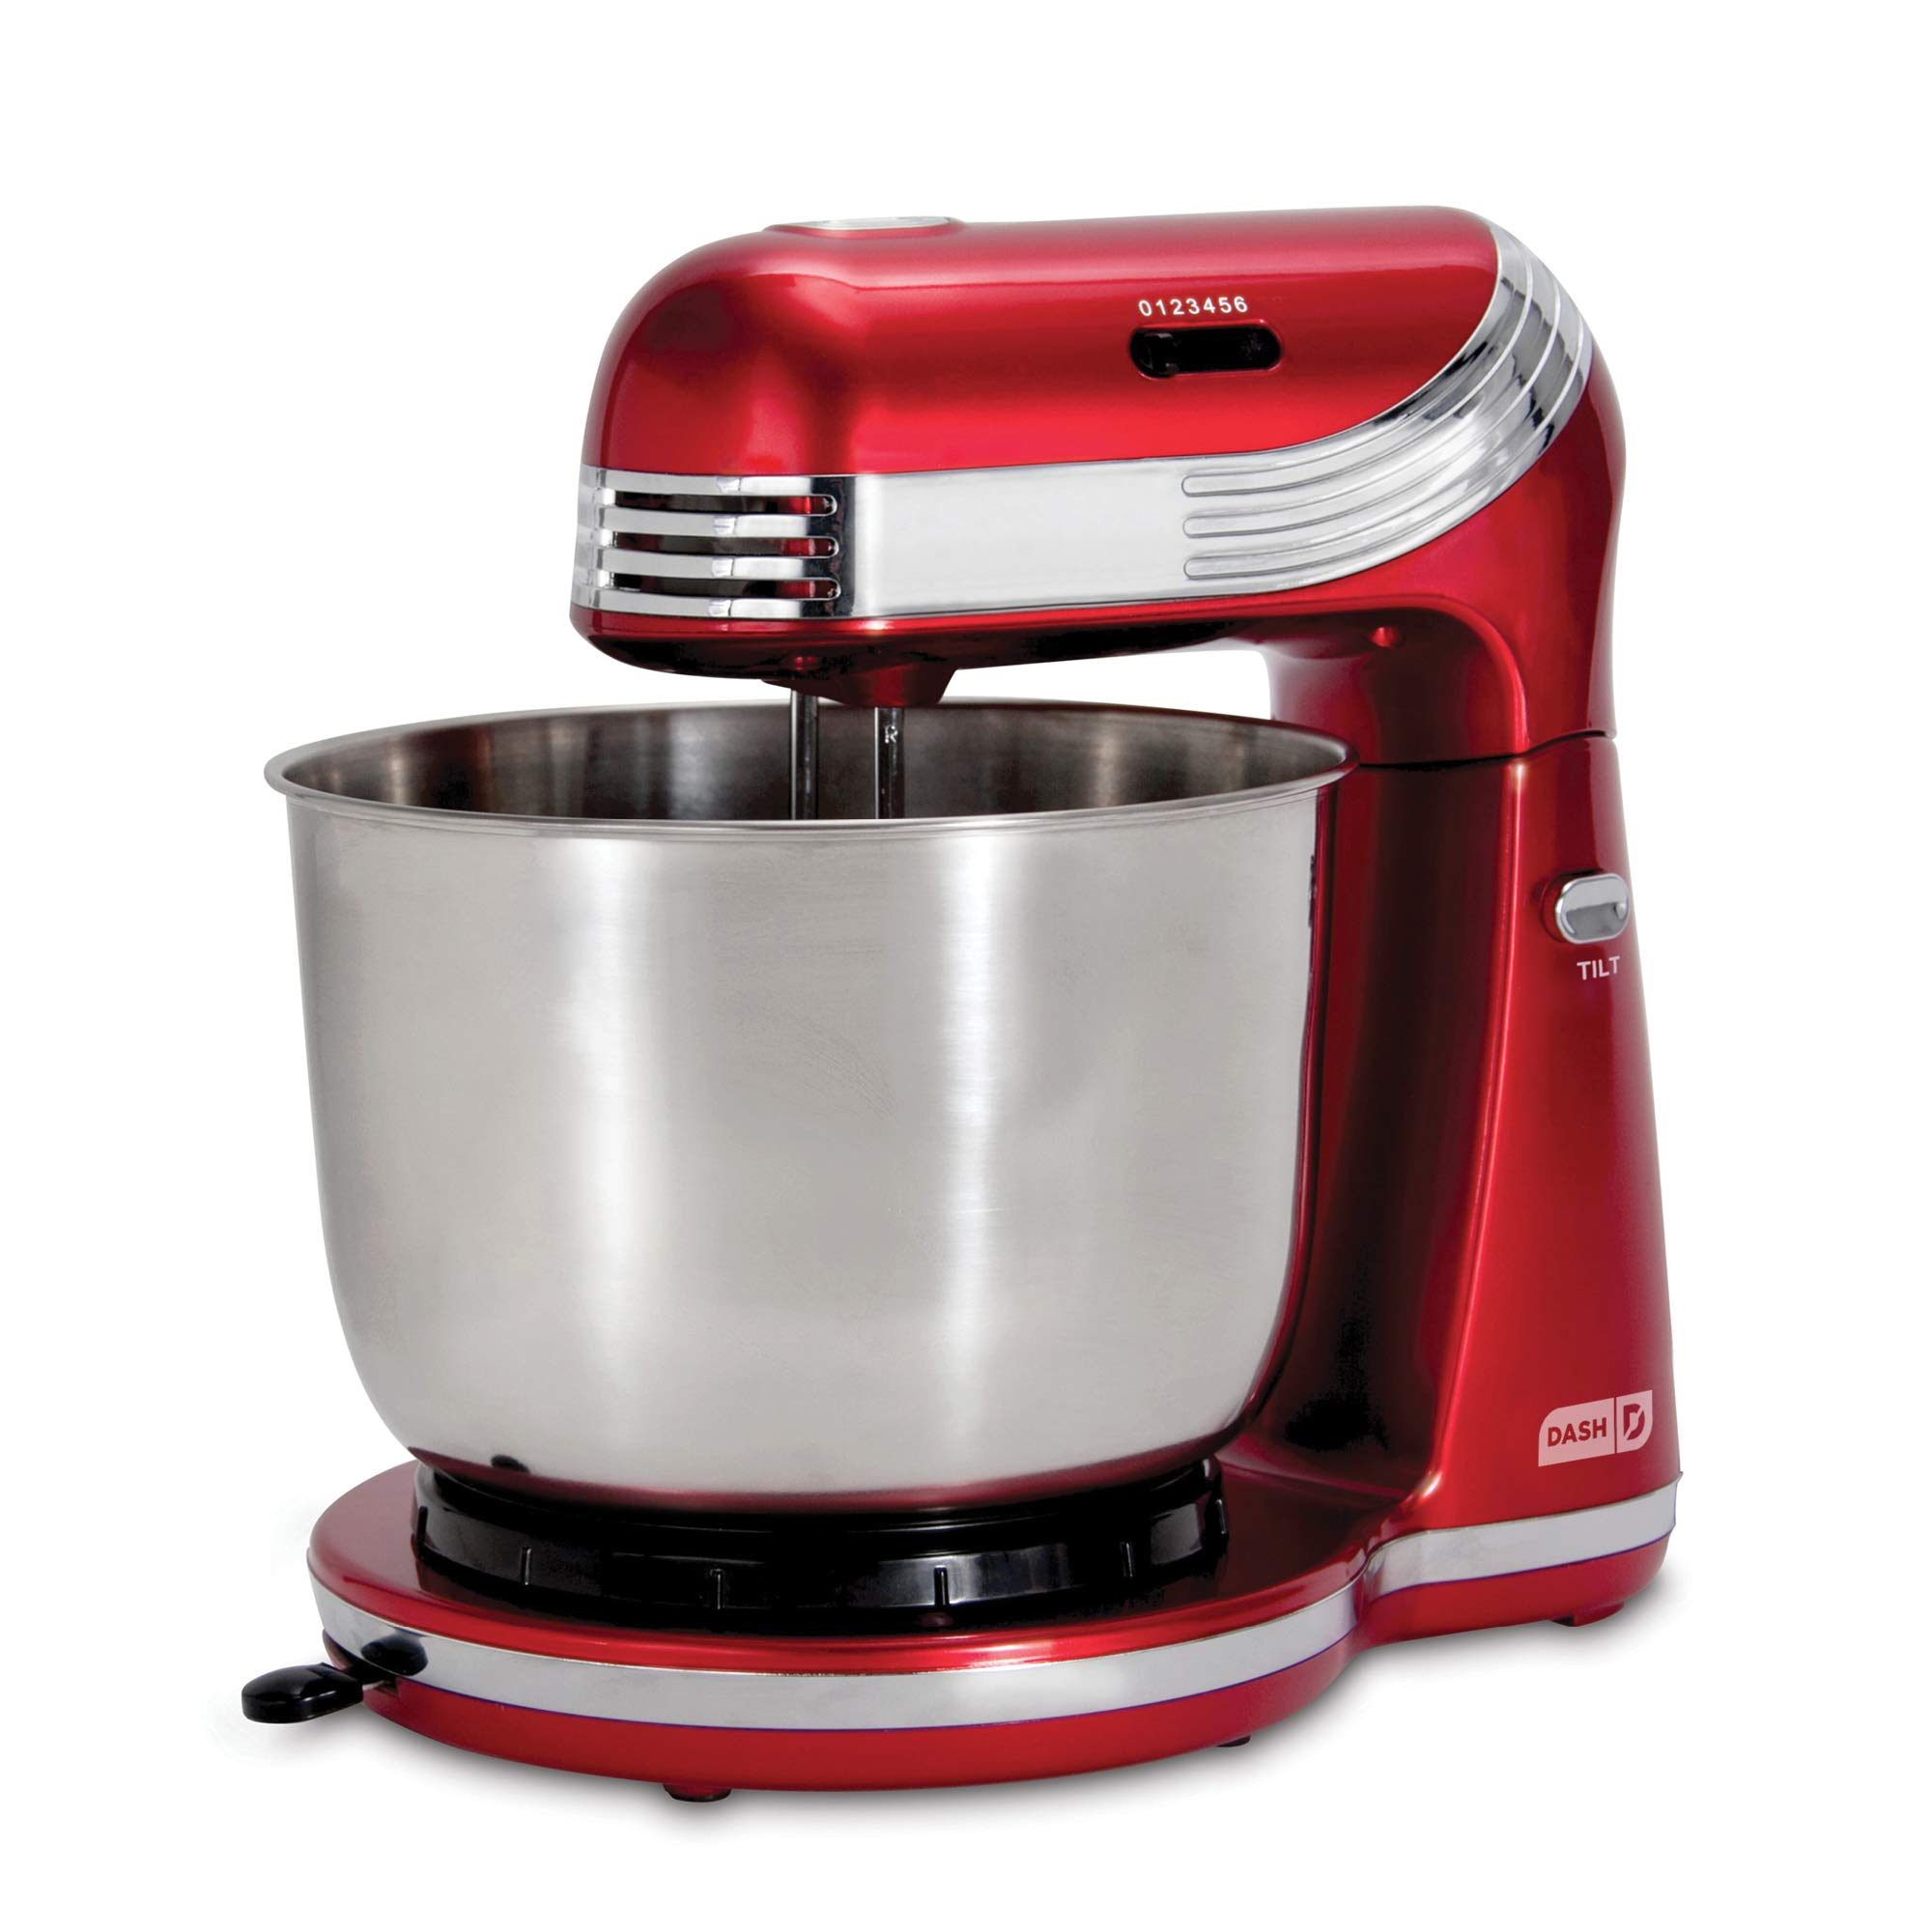 Dash Stand Mixer (Electric Mixer for Everyday Use): 6 Speed Stand Mixer with 3 qt Stainless Steel Mixing Bowl, Dough Hooks & Mixer Beaters for Dressings, Frosting, Meringues & More - Red by DASH